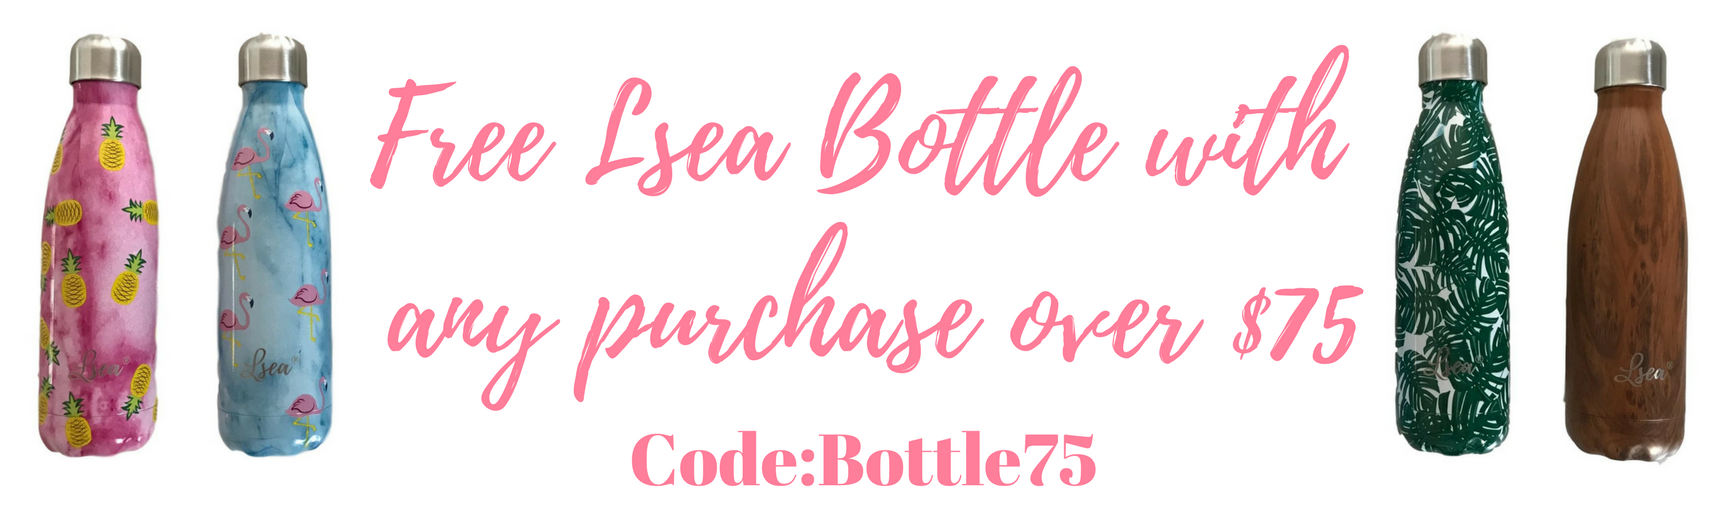 Free Lsea Bottle with any purchase over $75.png